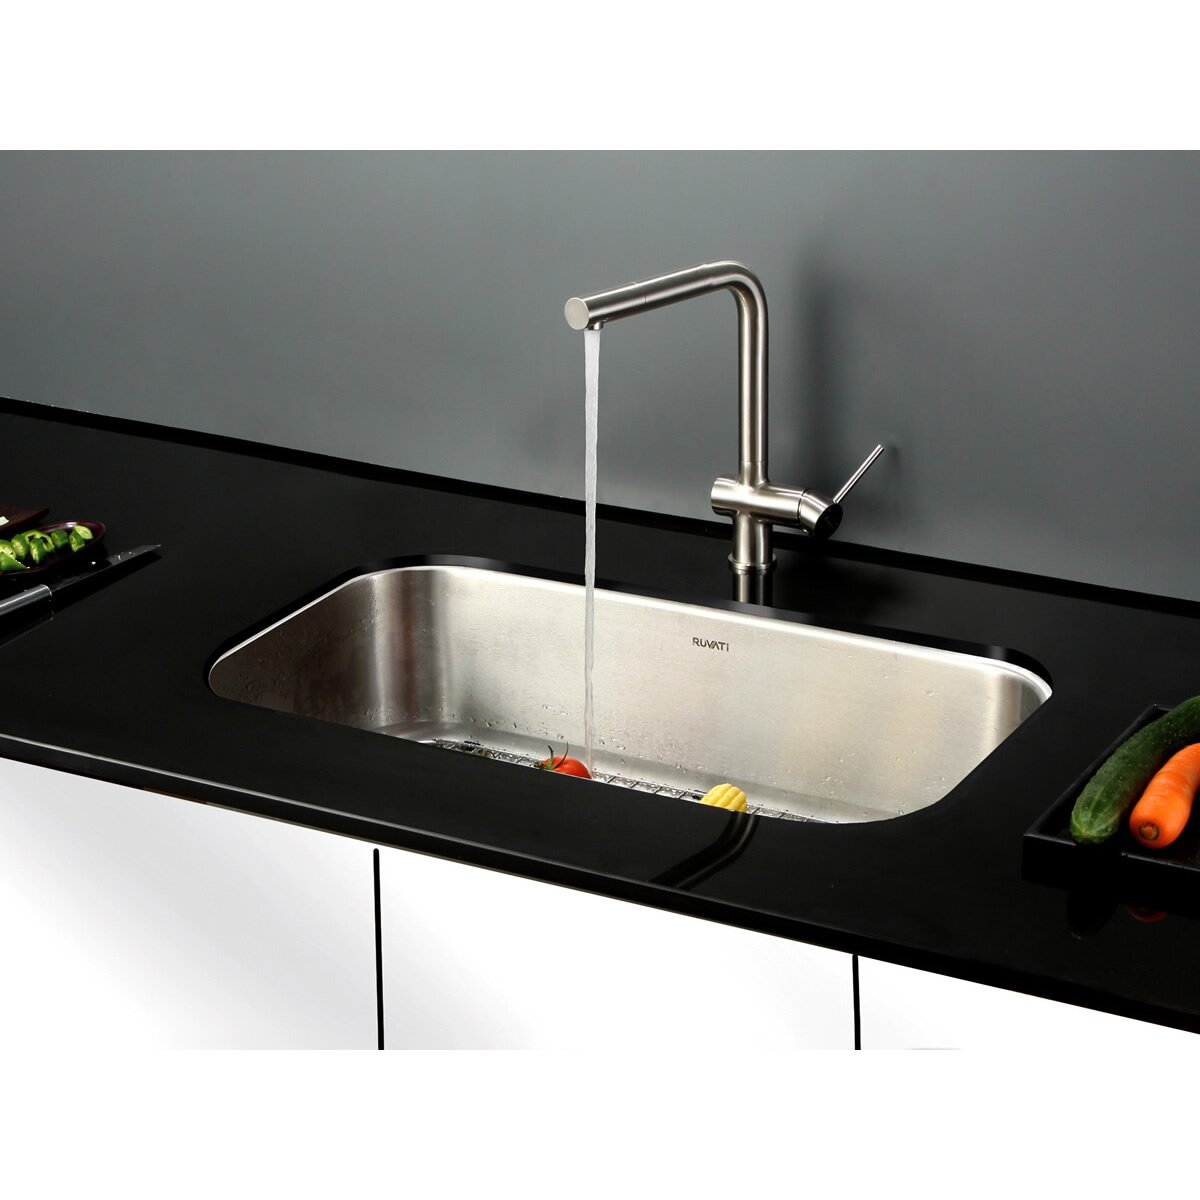 25 inch undermount kitchen sink ruvati parmi 31 5 quot x 18 25 quot undermount single bowl kitchen 7307